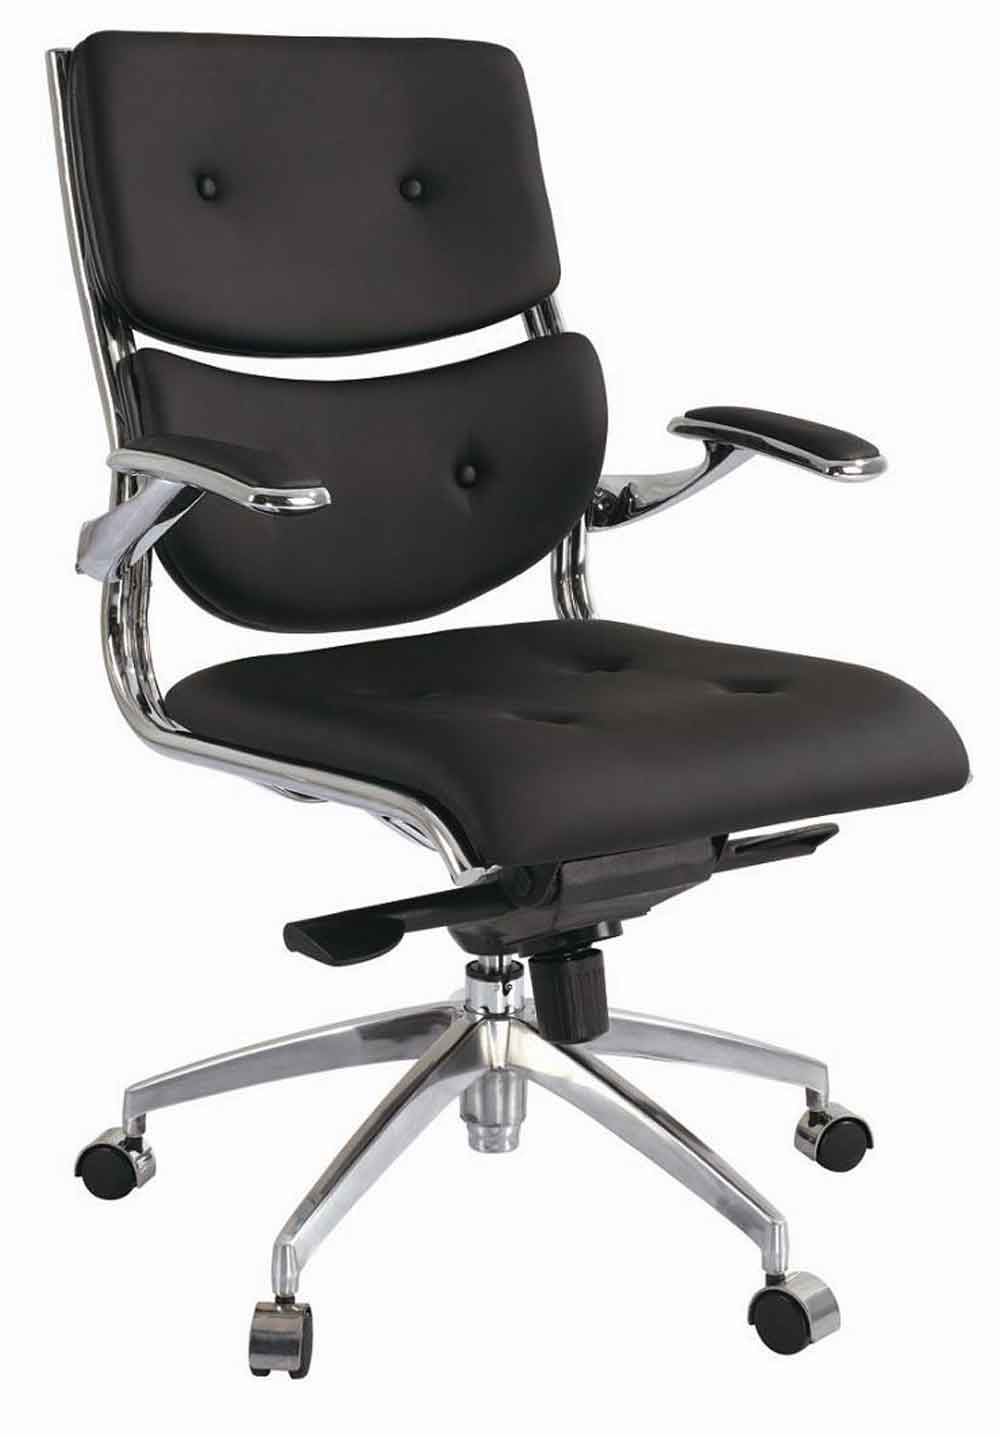 Armor Elegant Executive Office Desk Chairs